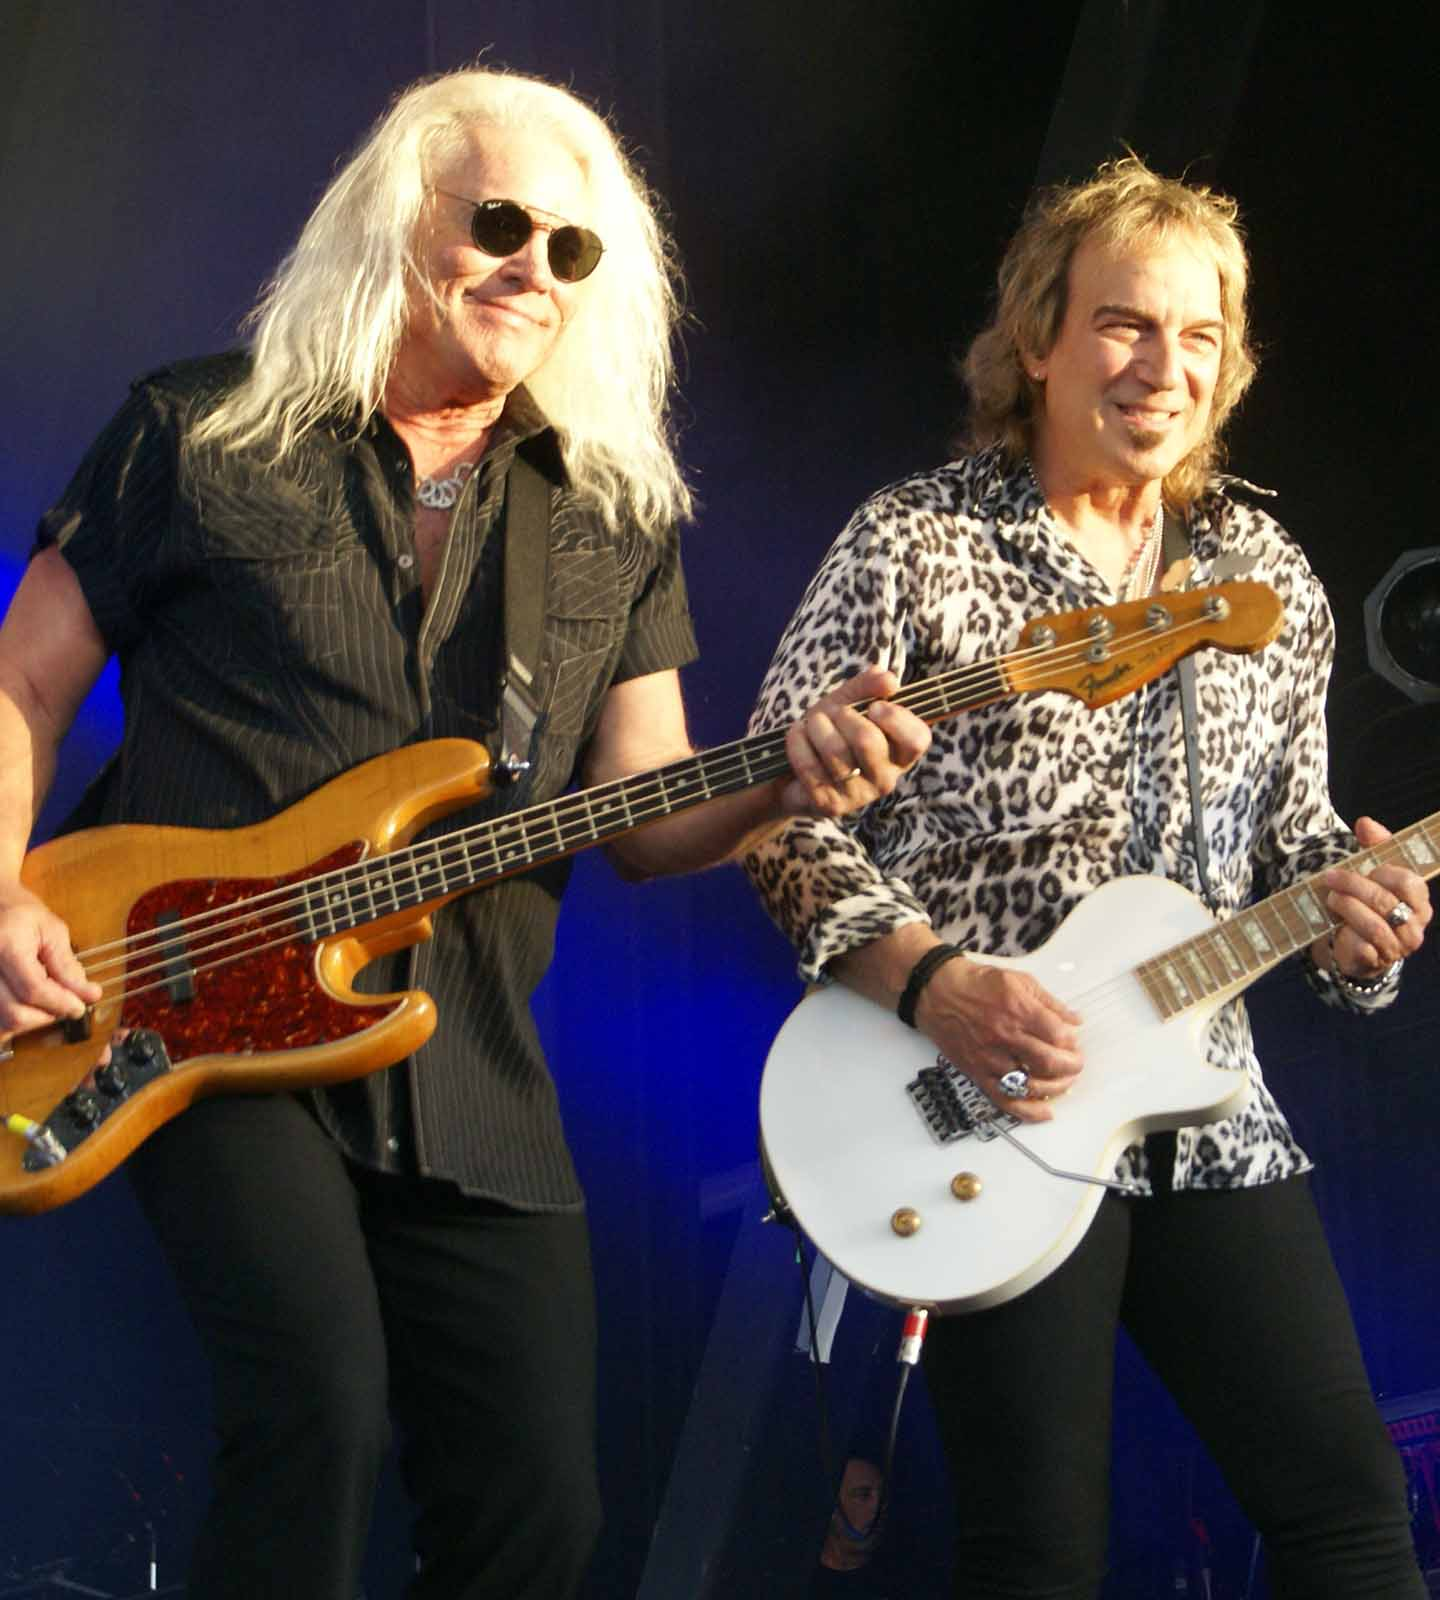 Chicago REO Speedwagon image 4